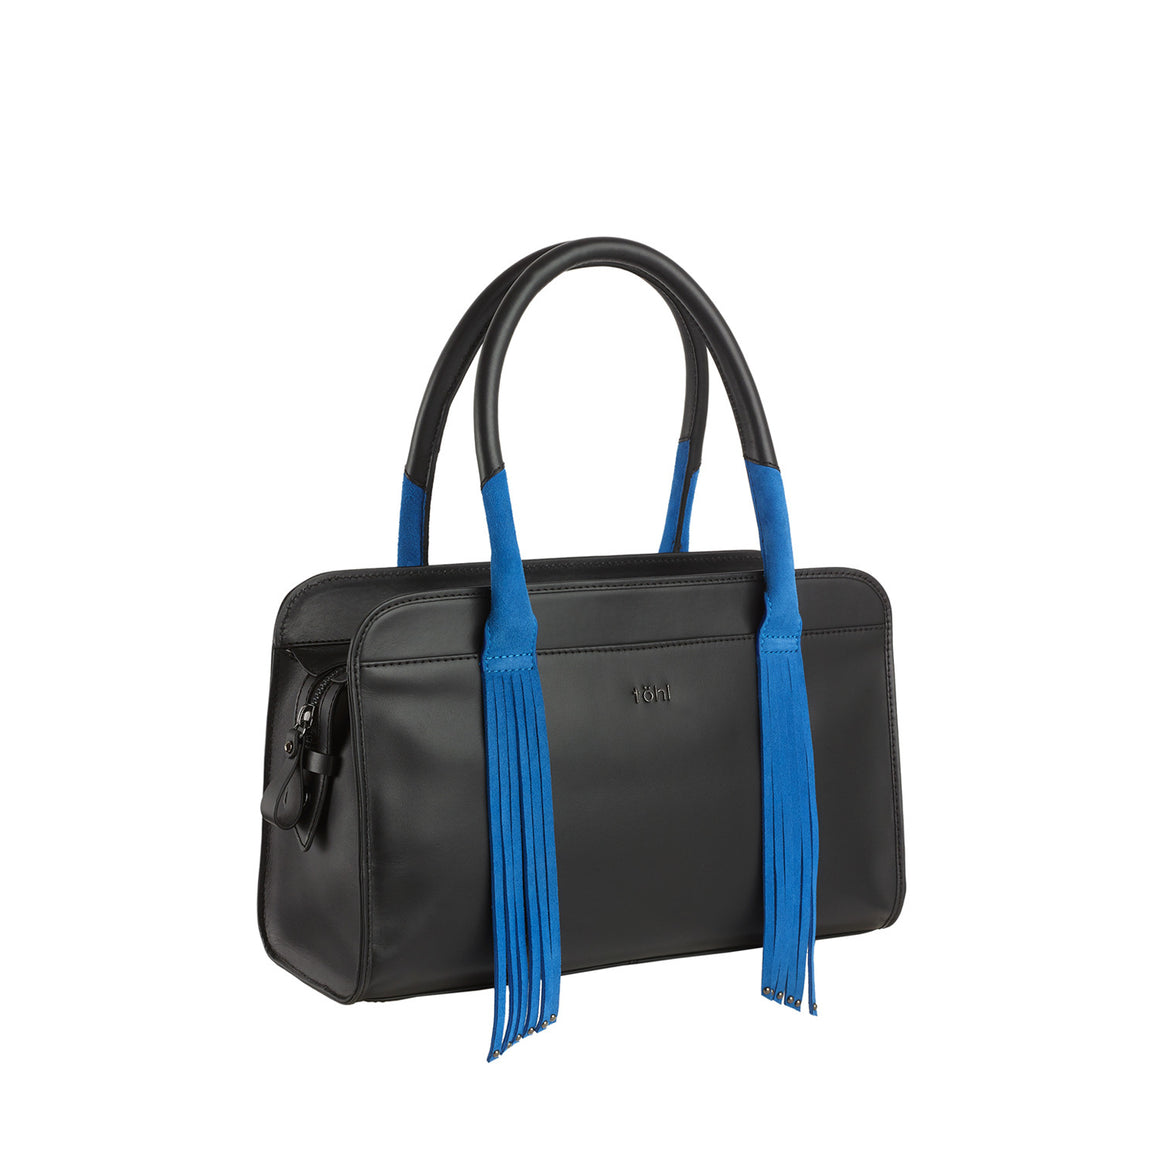 SB 0012 - TOHL TAMARA WOMEN'S DAY BAG - CHARCOAL BLACK